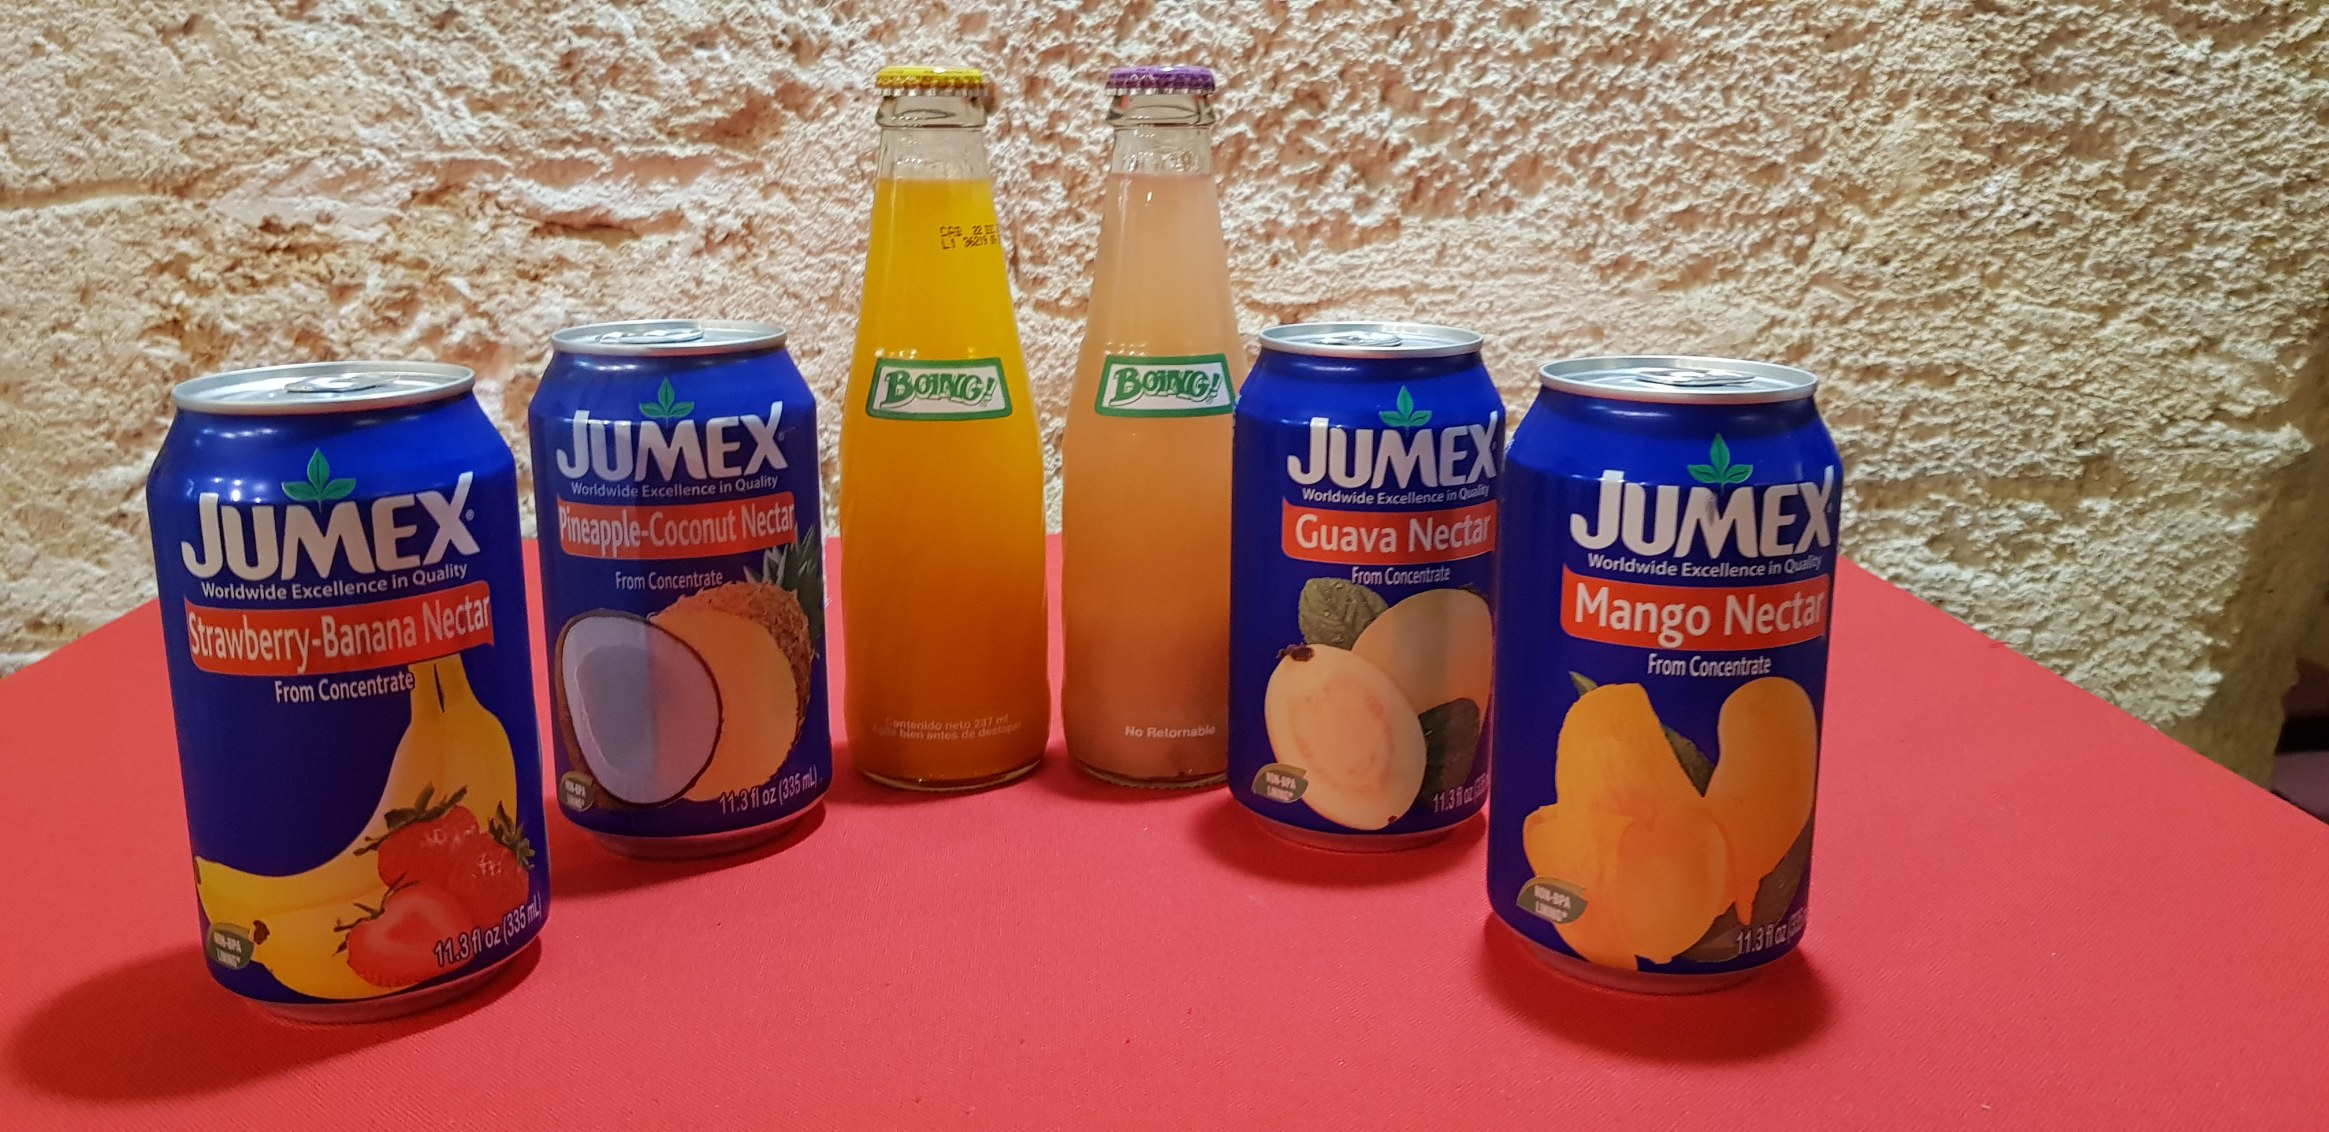 Jus mexicains